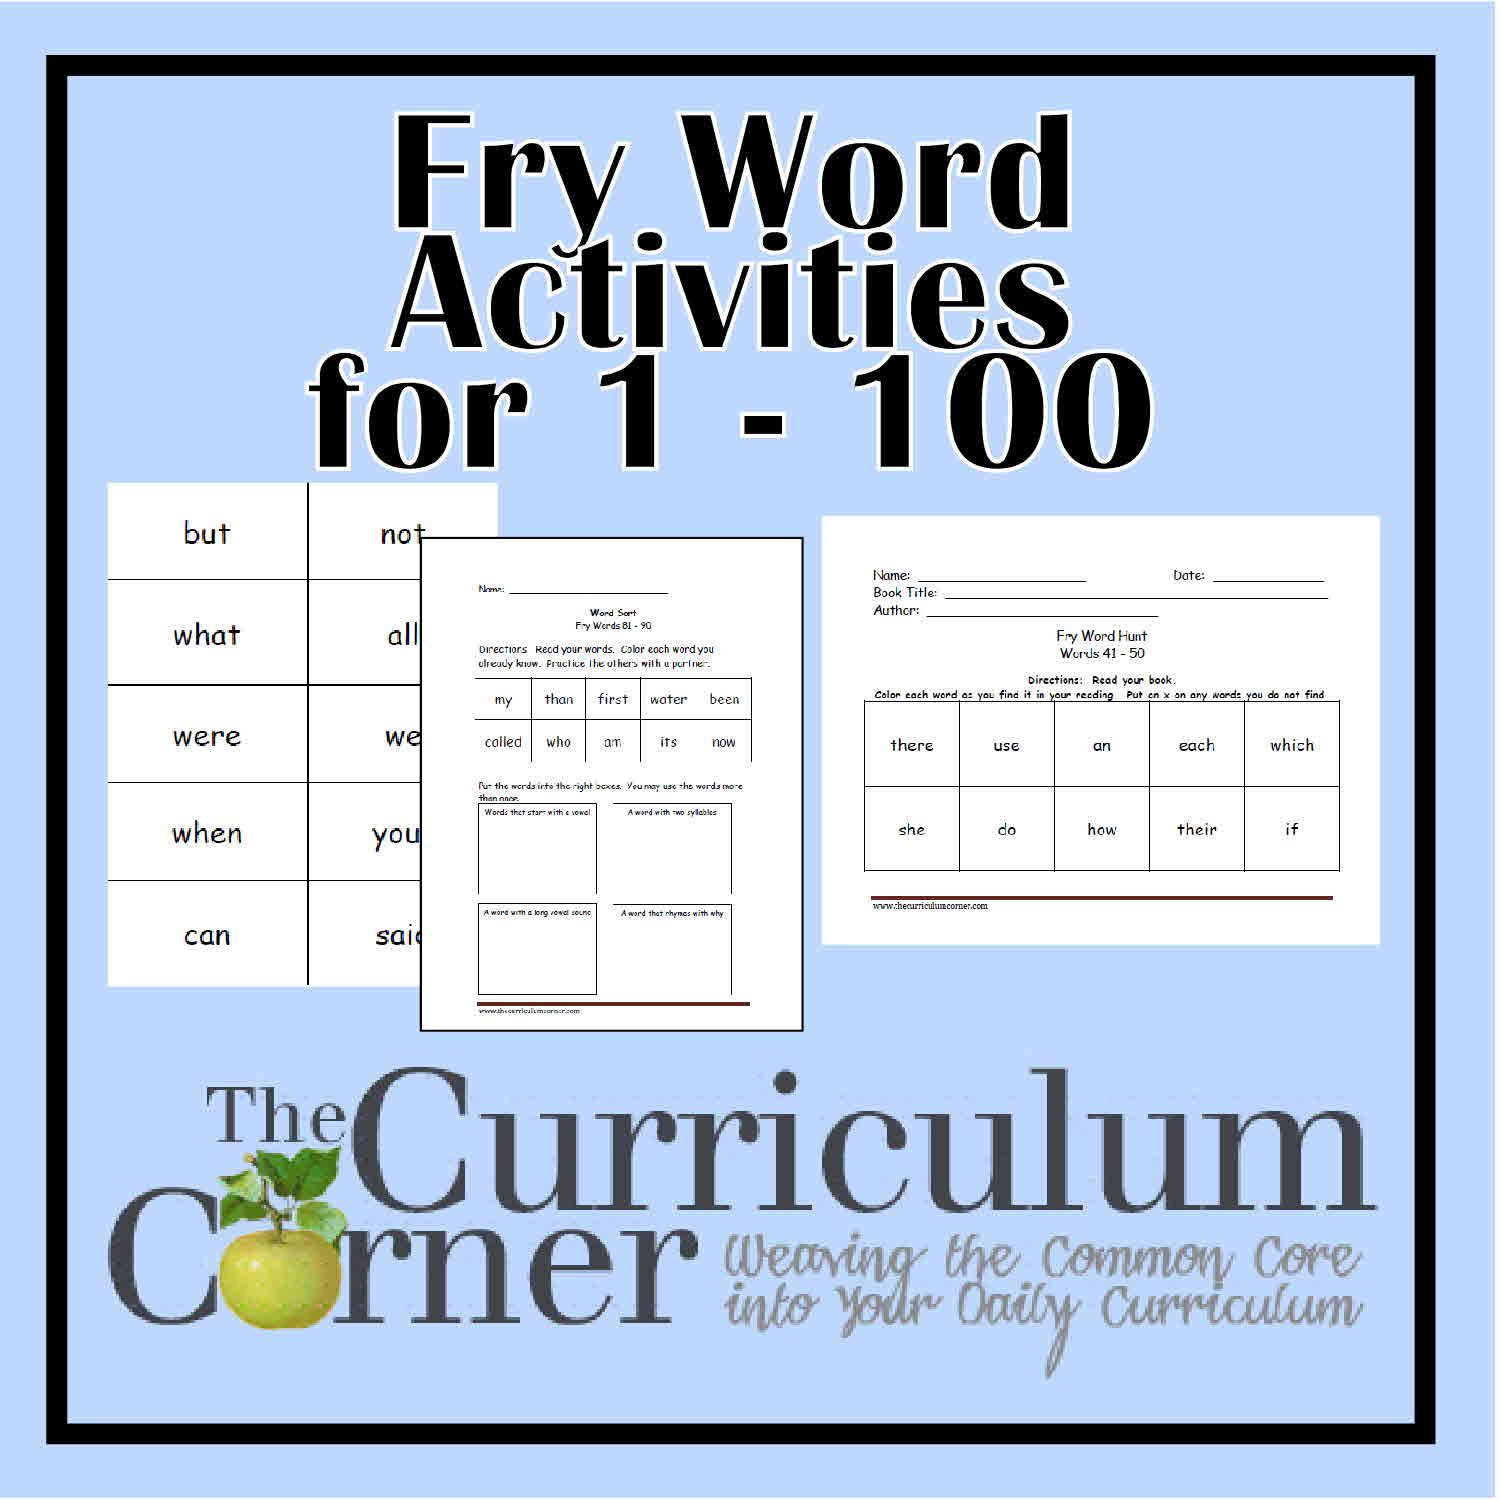 worksheet Fry Words Worksheets 1000 images about school fry words on pinterest sight word worksheets and site words